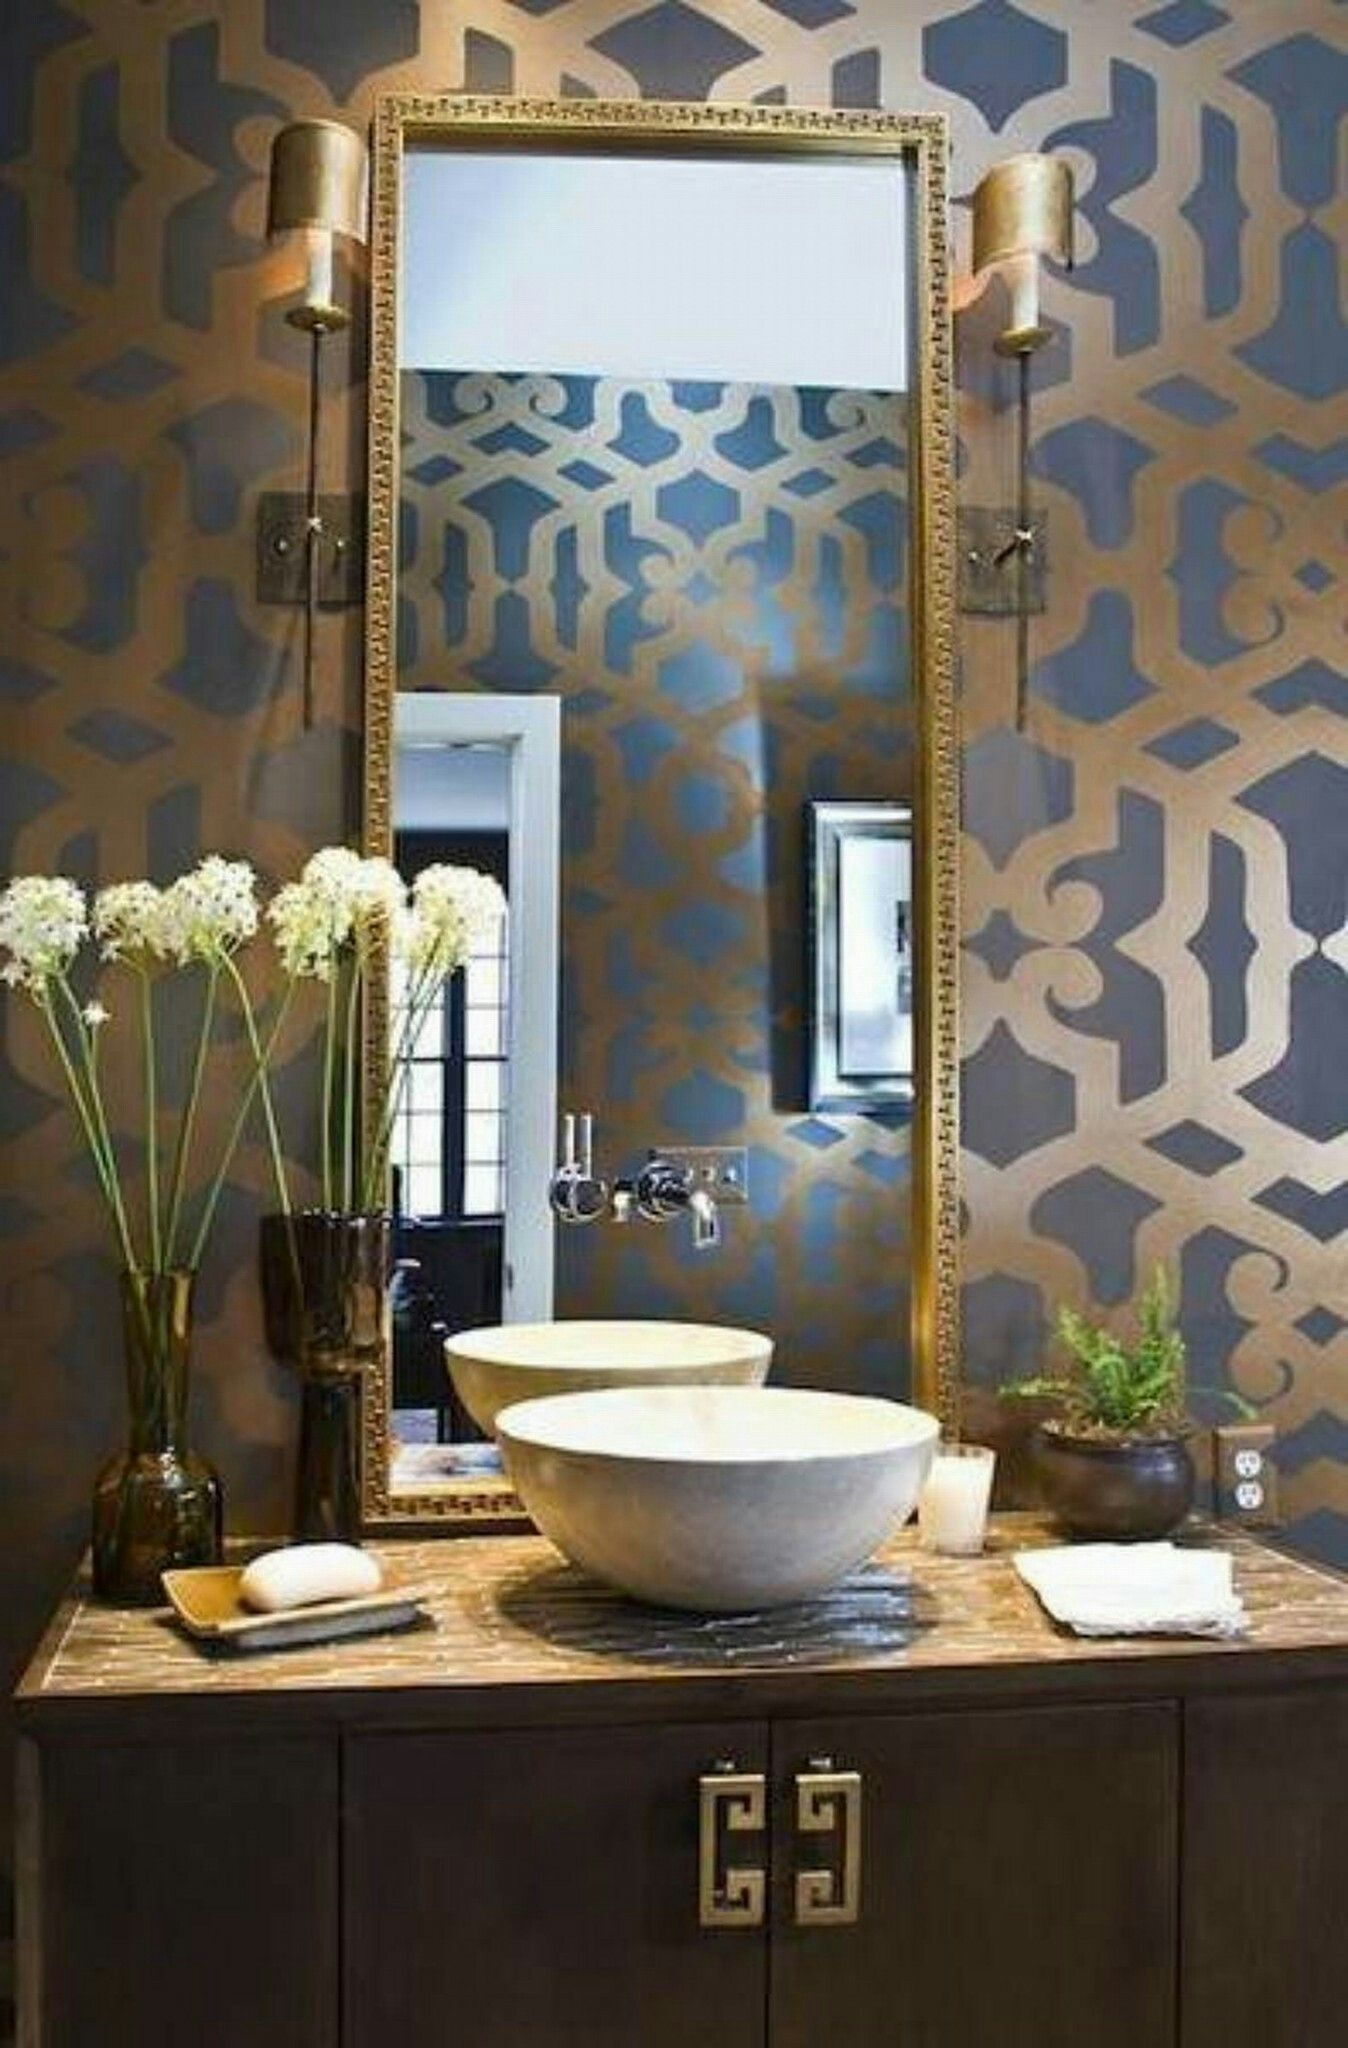 Bad Renovieren Tapeten Striking Gold Wallpaper In The Bathroom Bad In 2019 Badezimmer